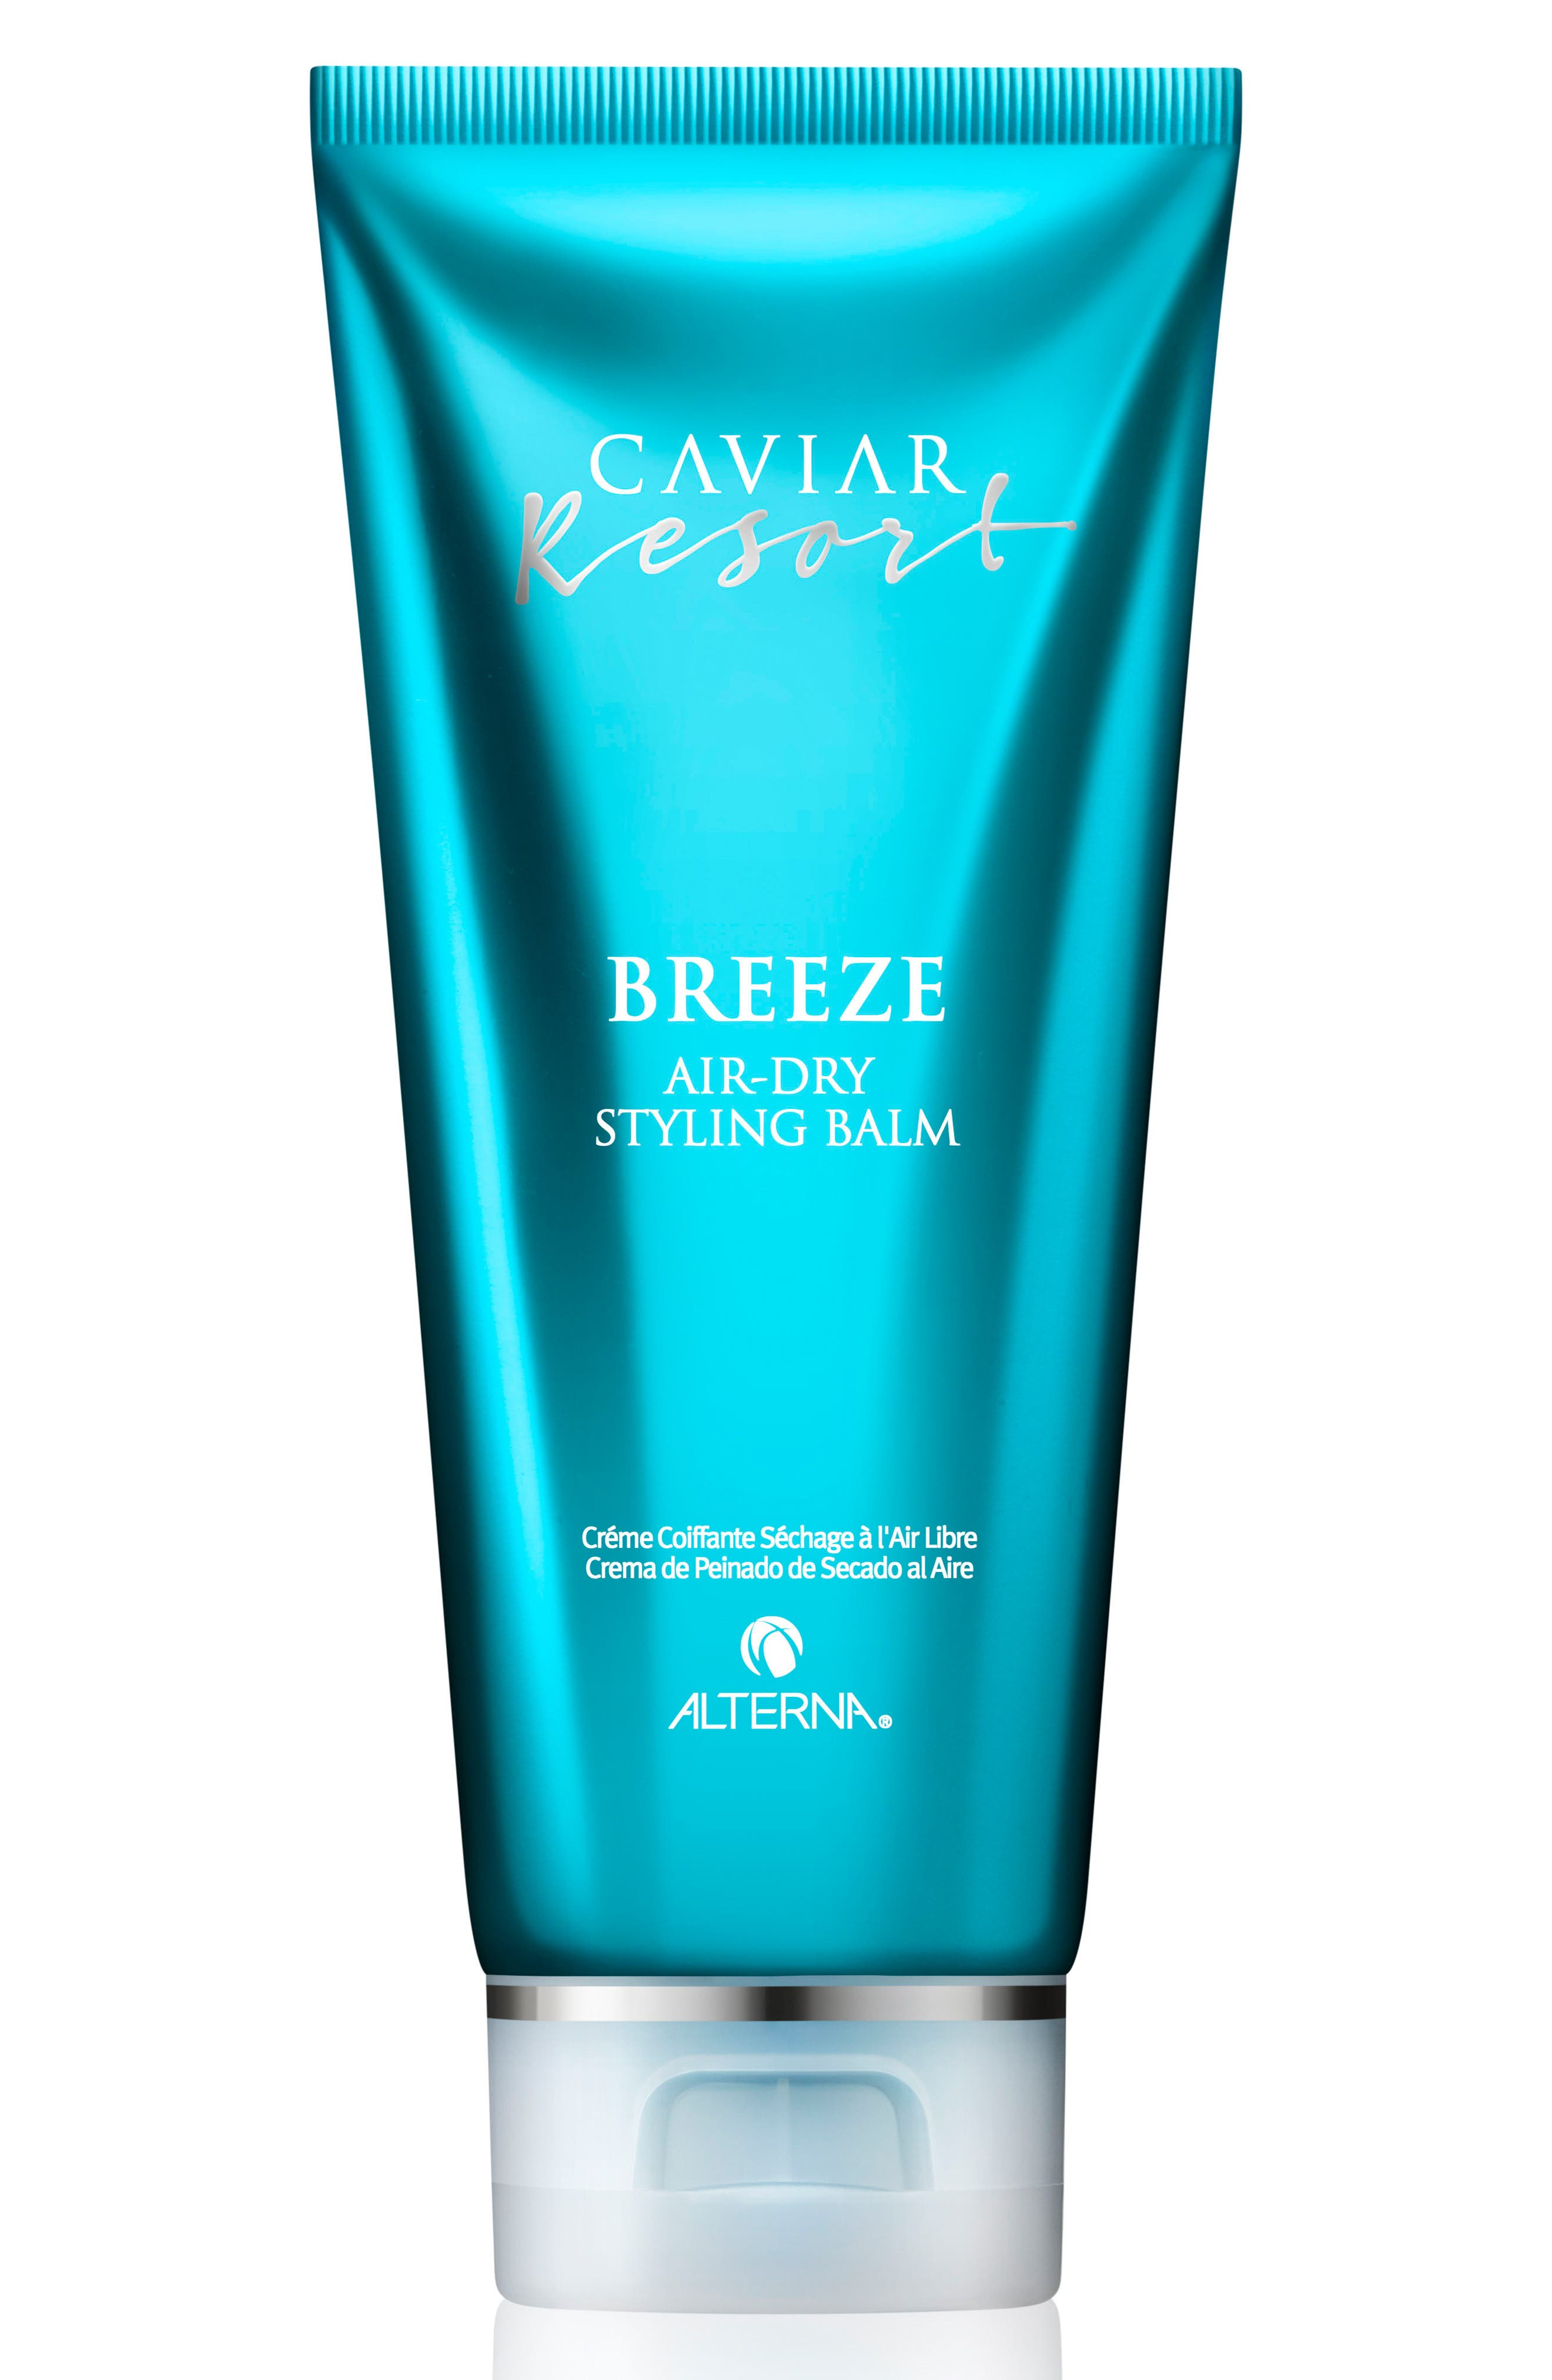 ALTERNA® Caviar Resort Breeze Air-Dry Styling Balm